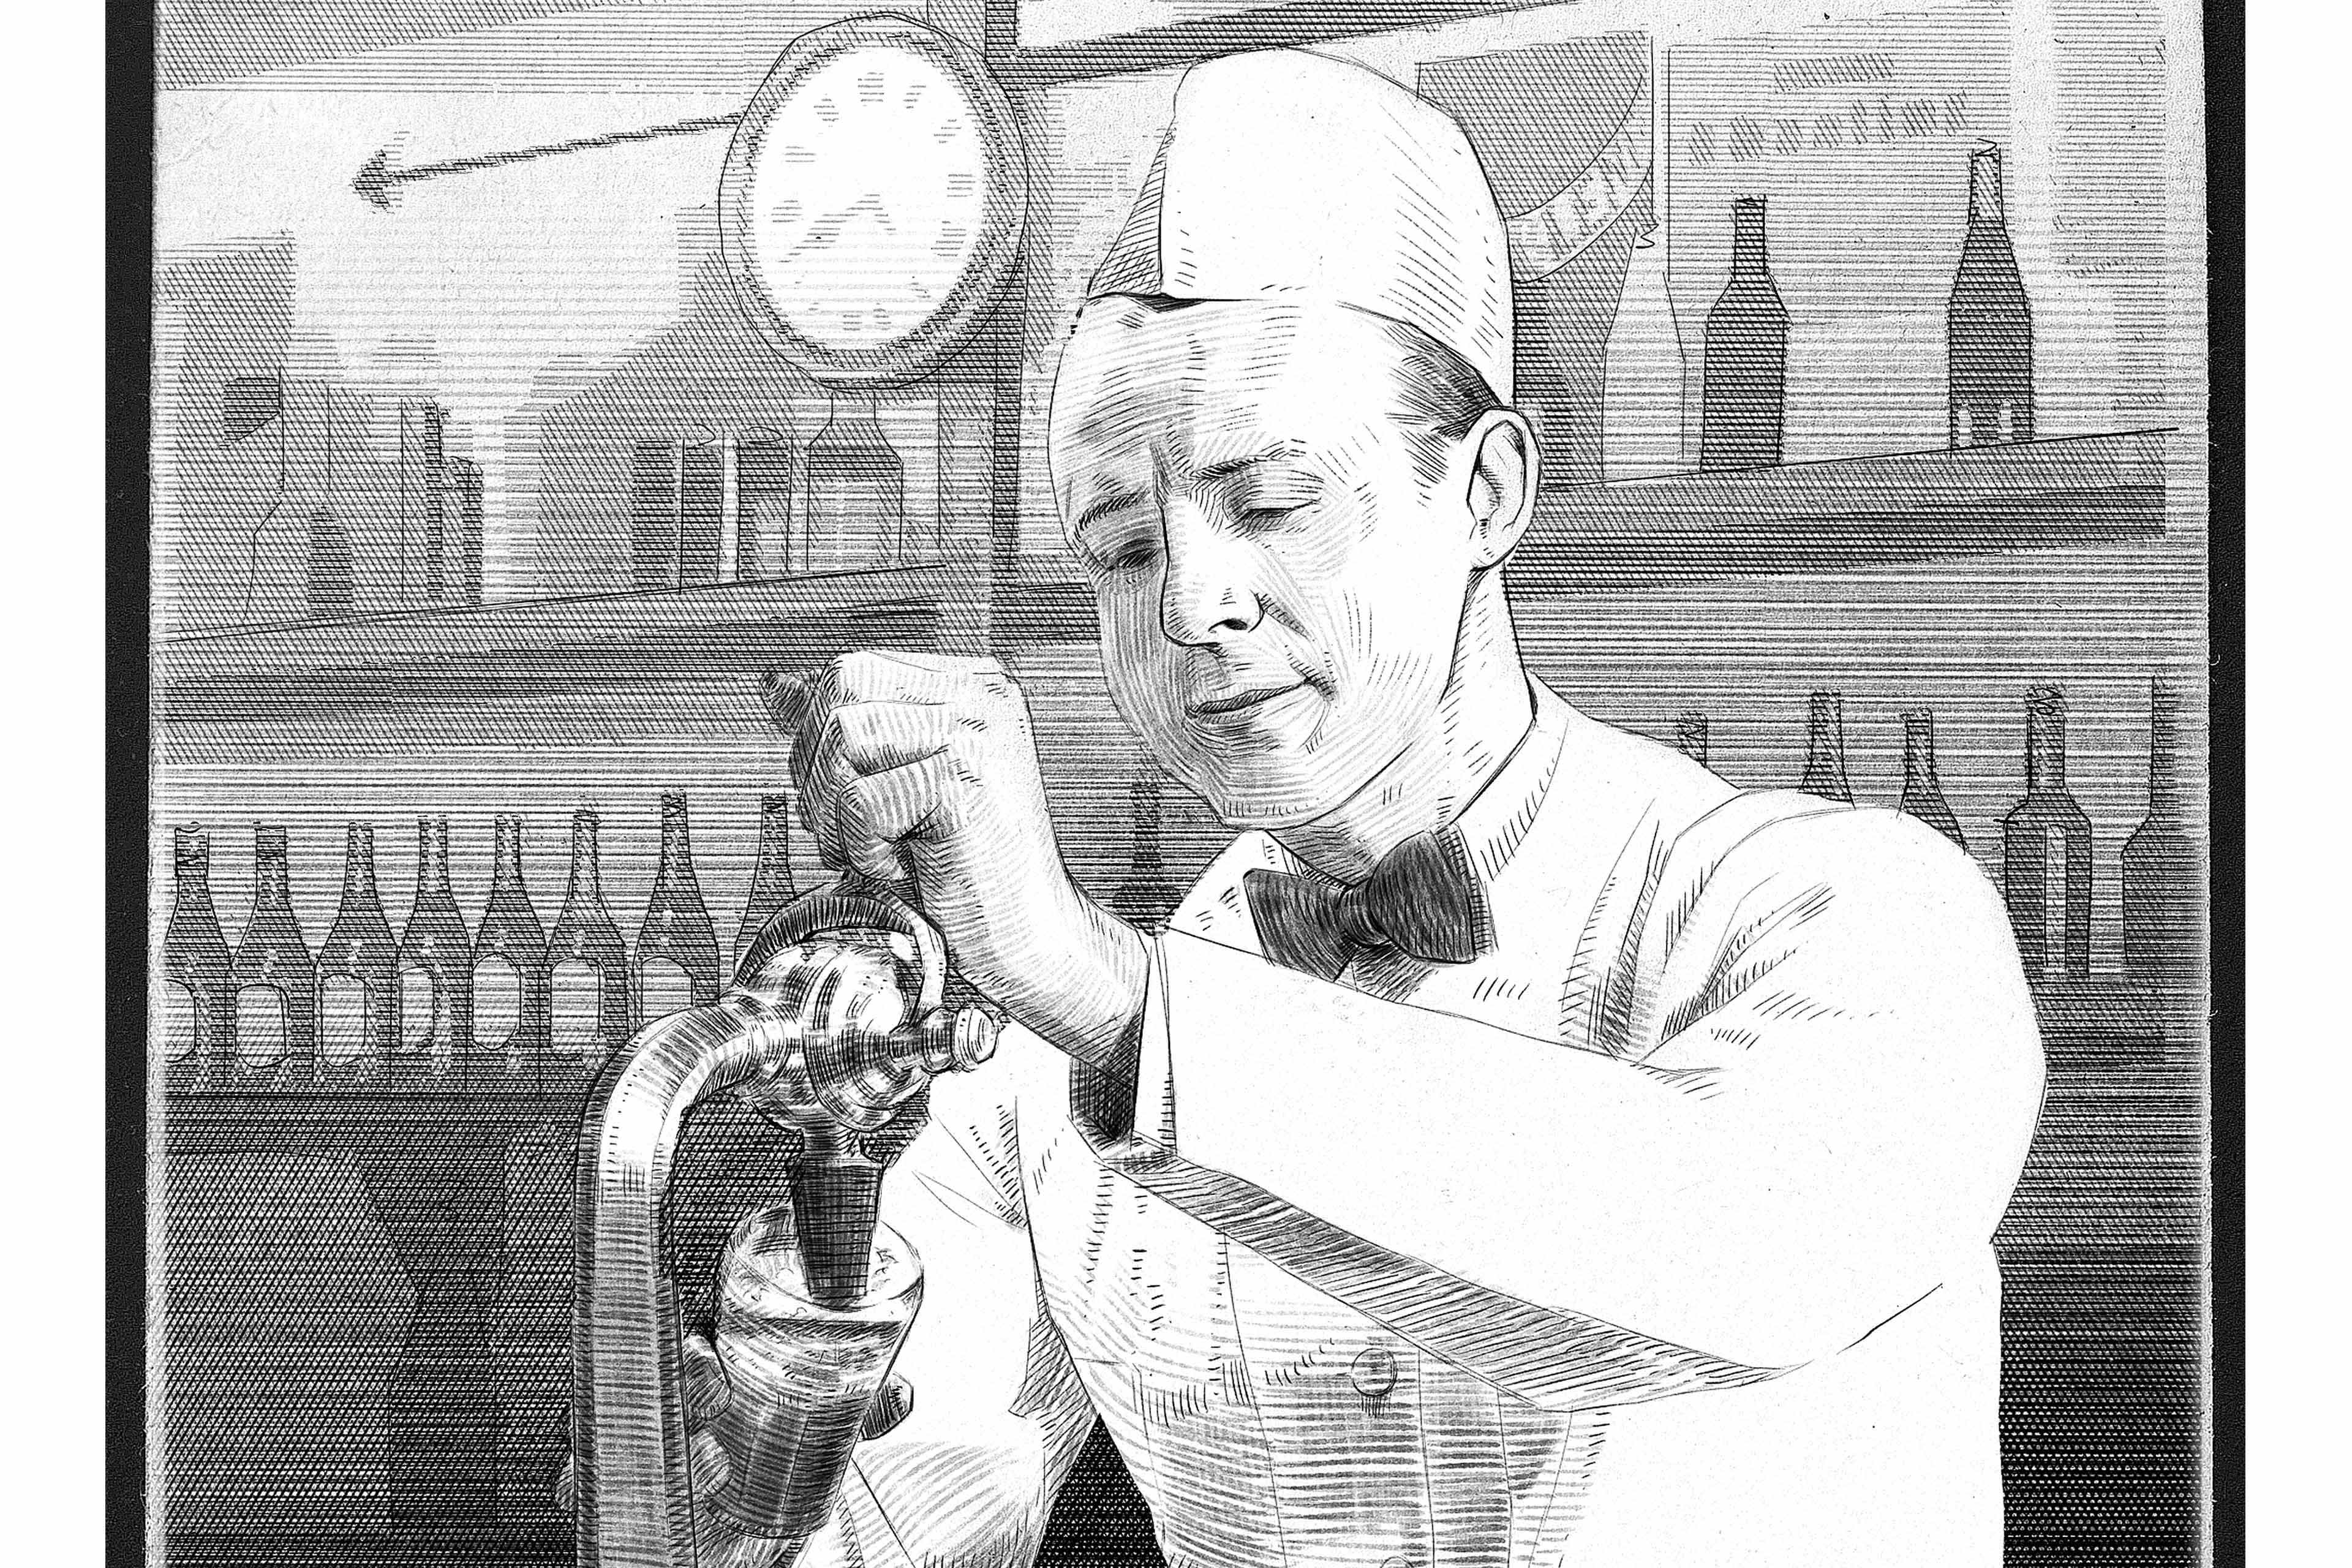 US Congress approved a 10% tax on bottled soda pop and soda fountain sales